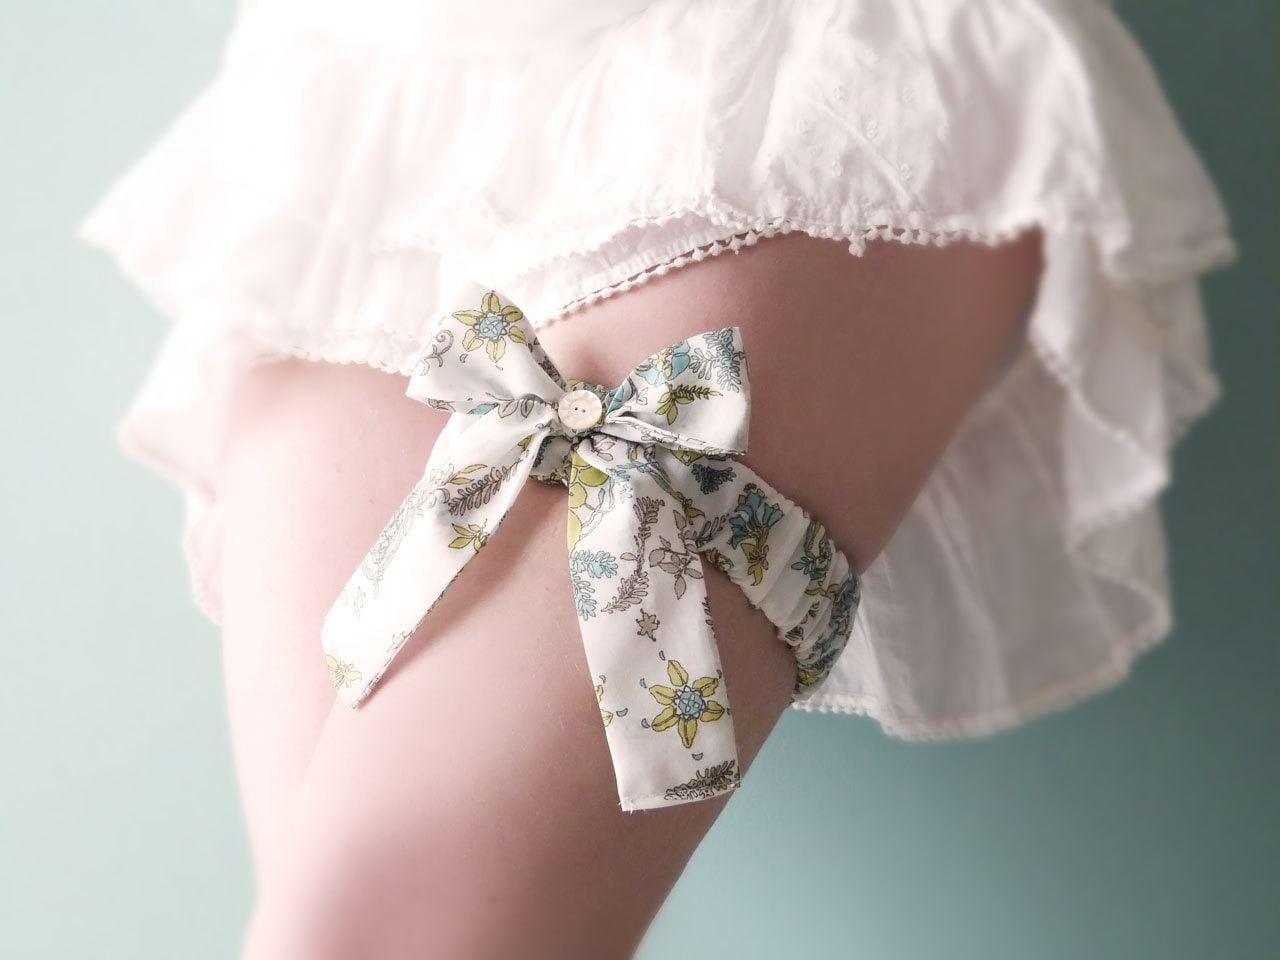 Bridal garter Romantic floral cotton French lingerie OOAK by Jye, Hand-made in France - Joliejye